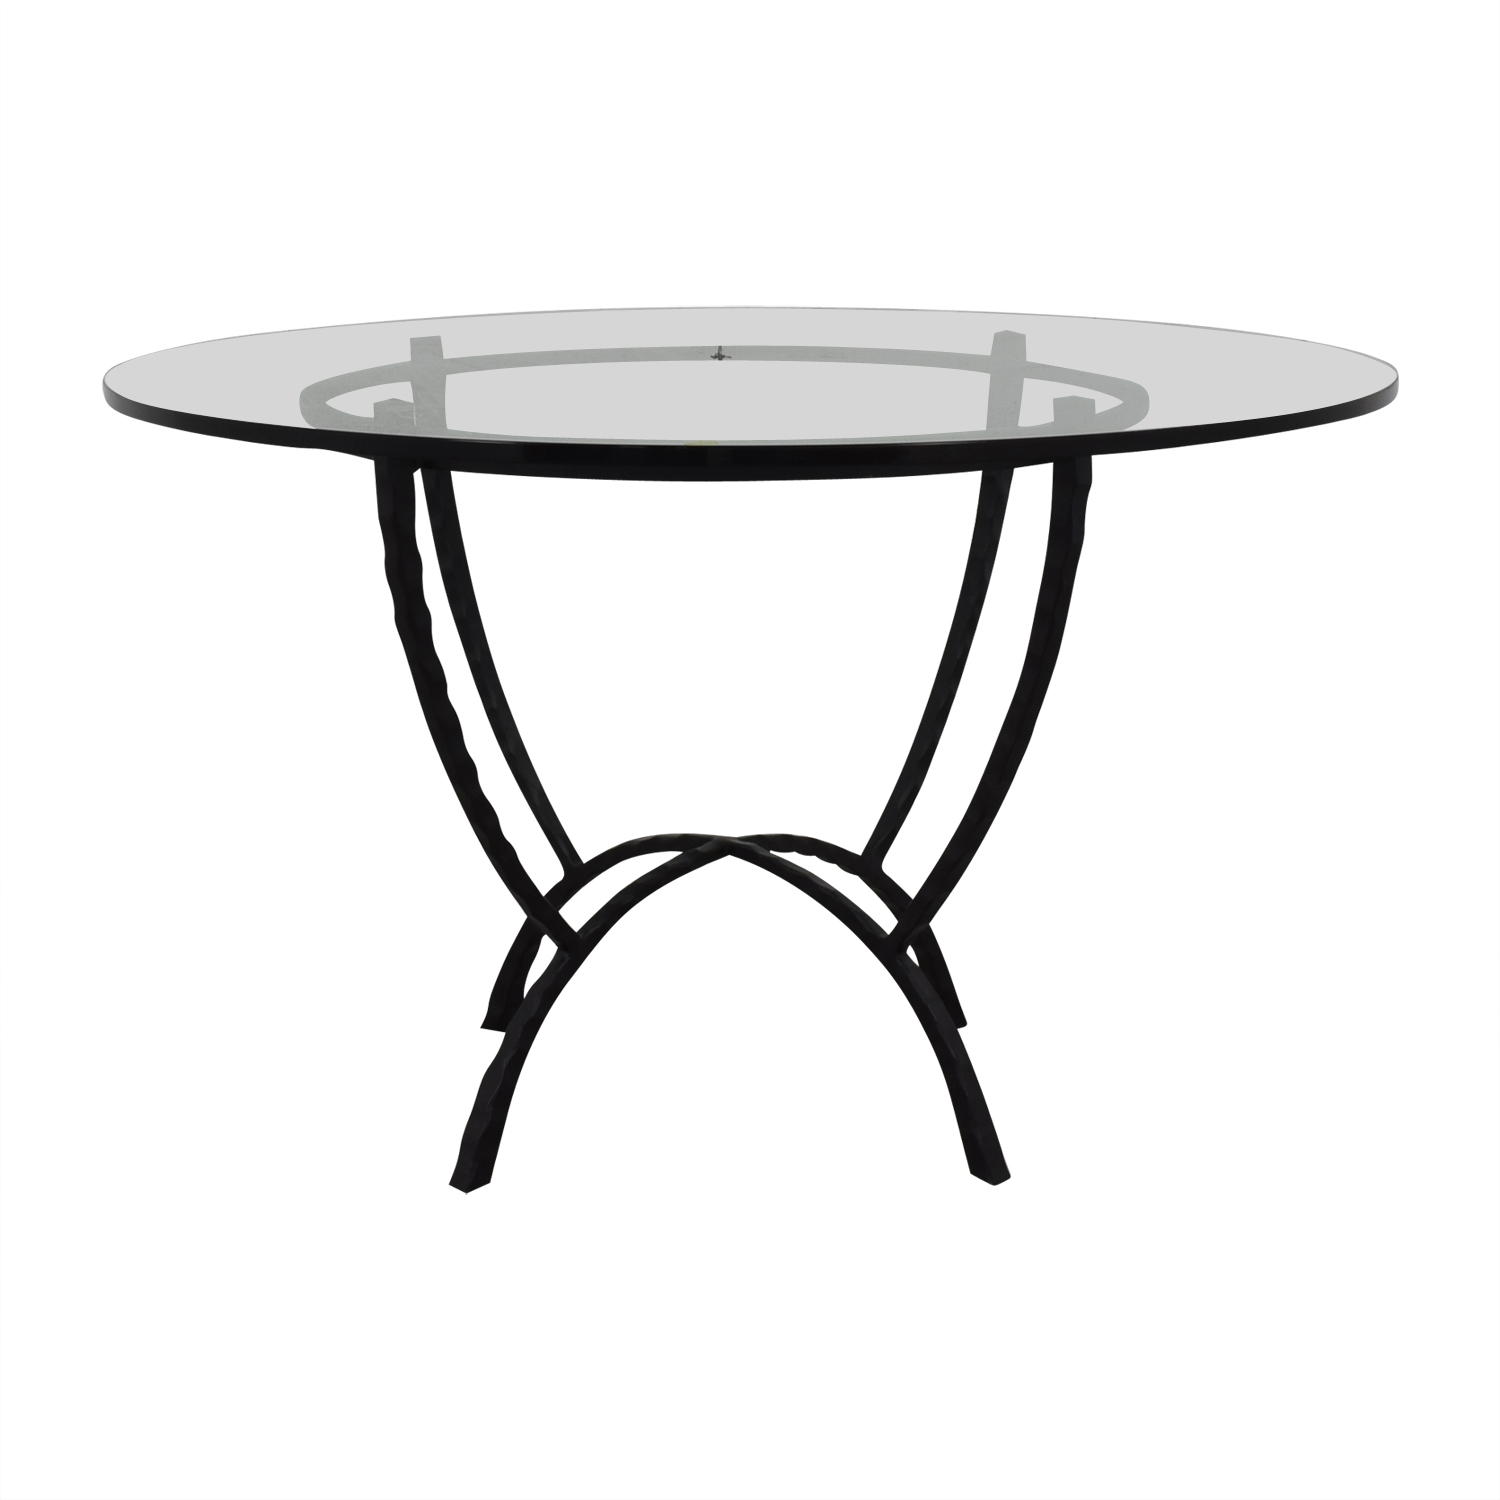 Stickley Furniture Stickley Furniture Round Glass Top Table coupon